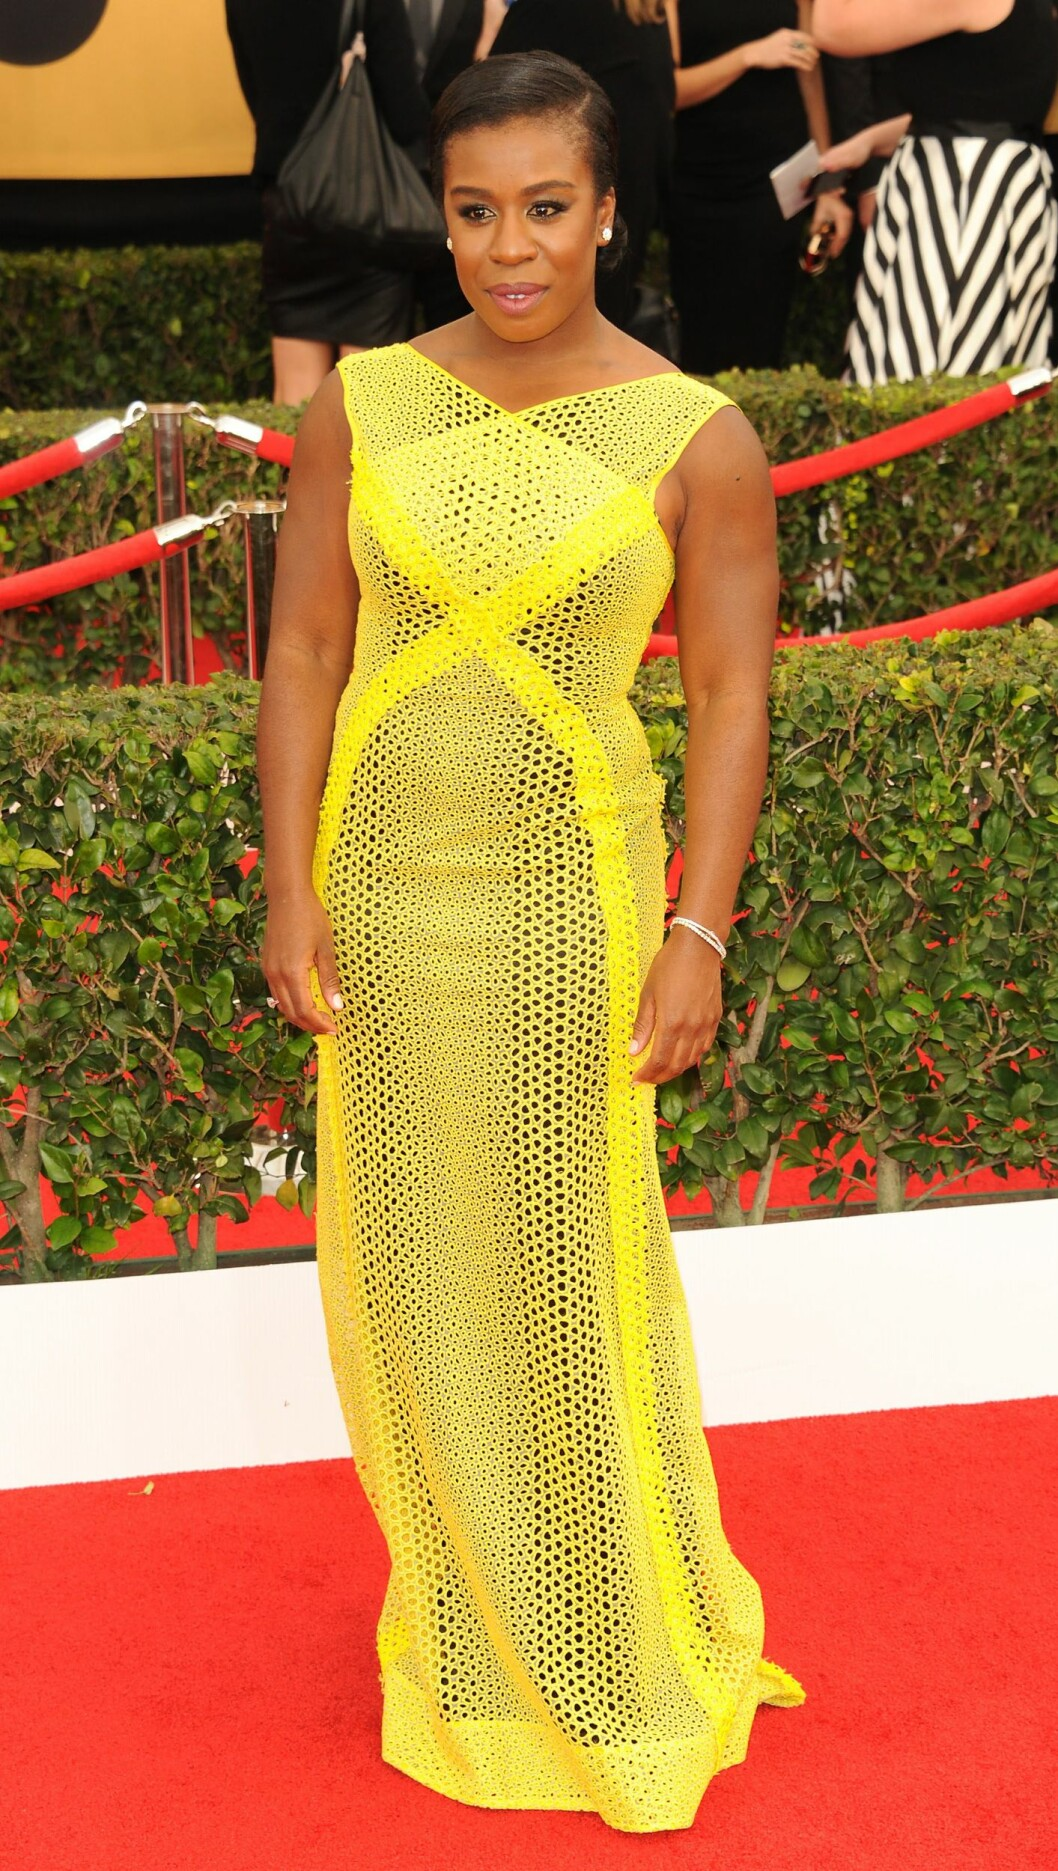 Uzo Aduba Foto: Fitzroy Barrett/Splash News/ All